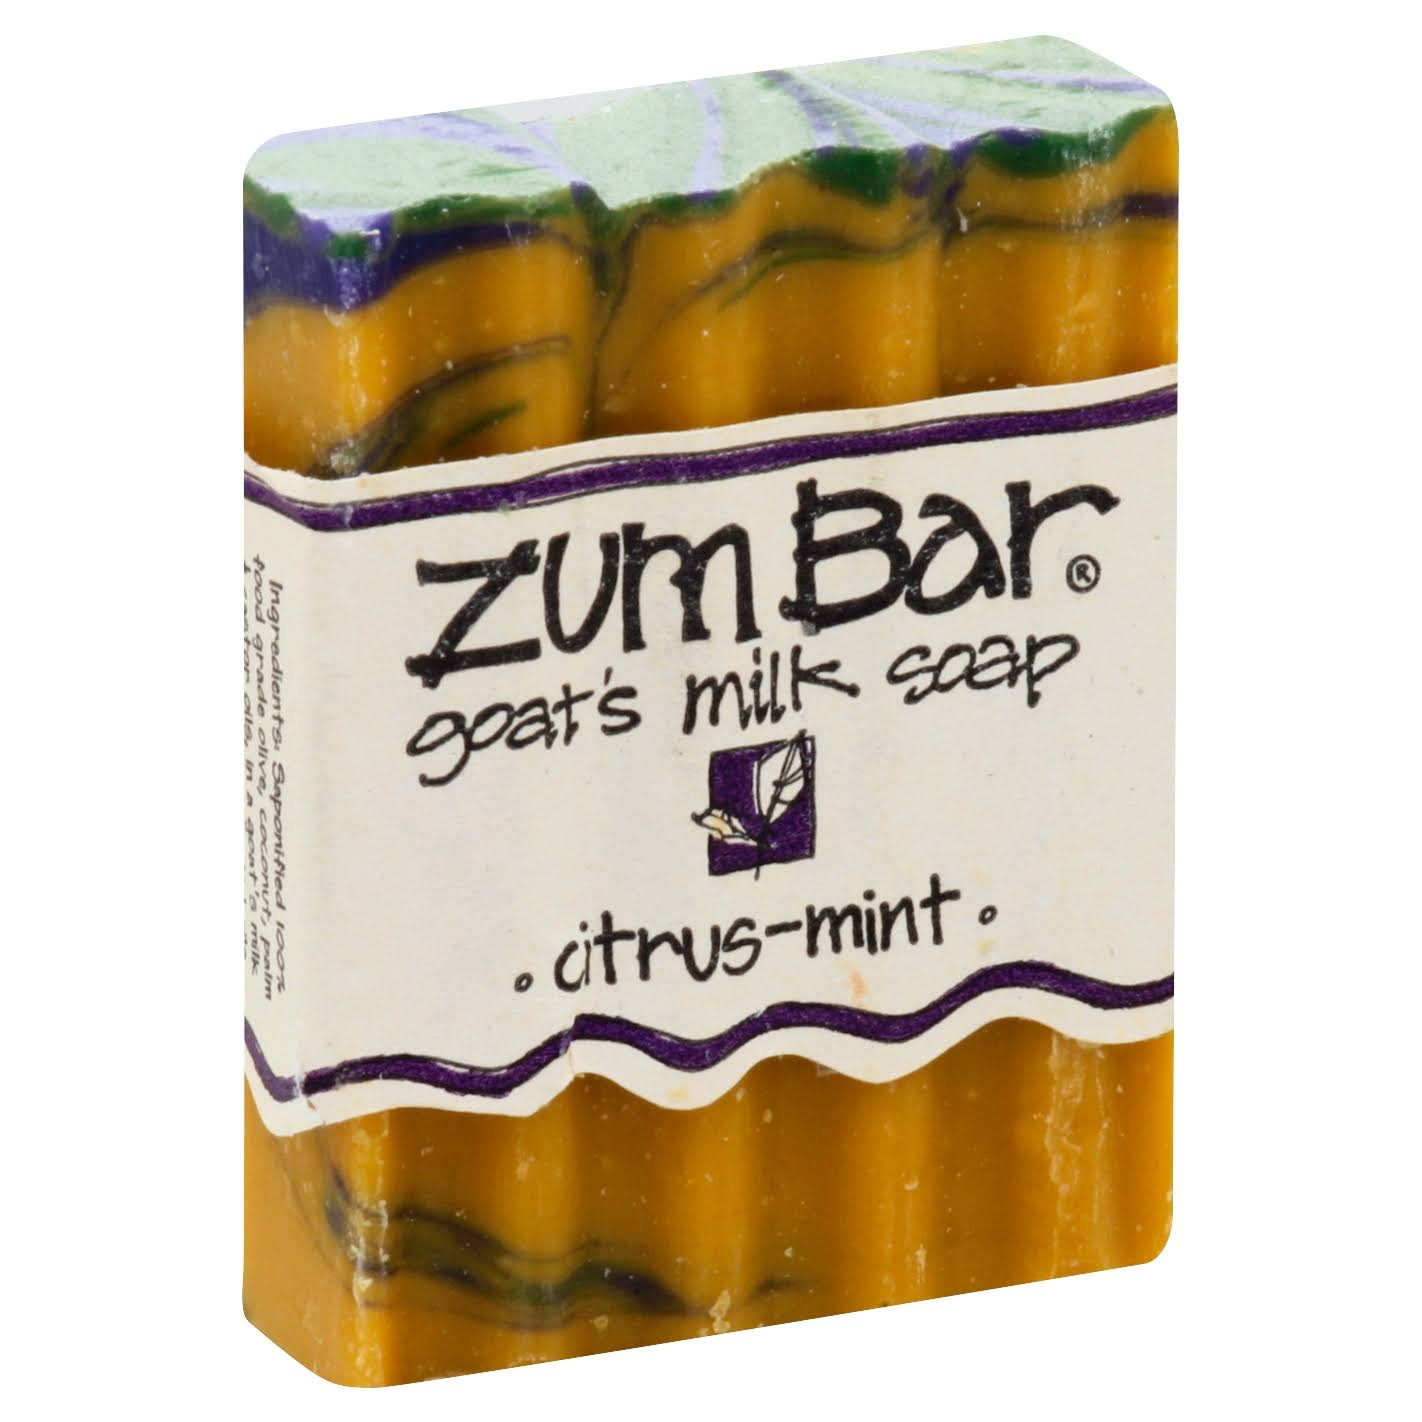 Zum Bar Goat's Milk Soap - Citrus & Mint, 3oz